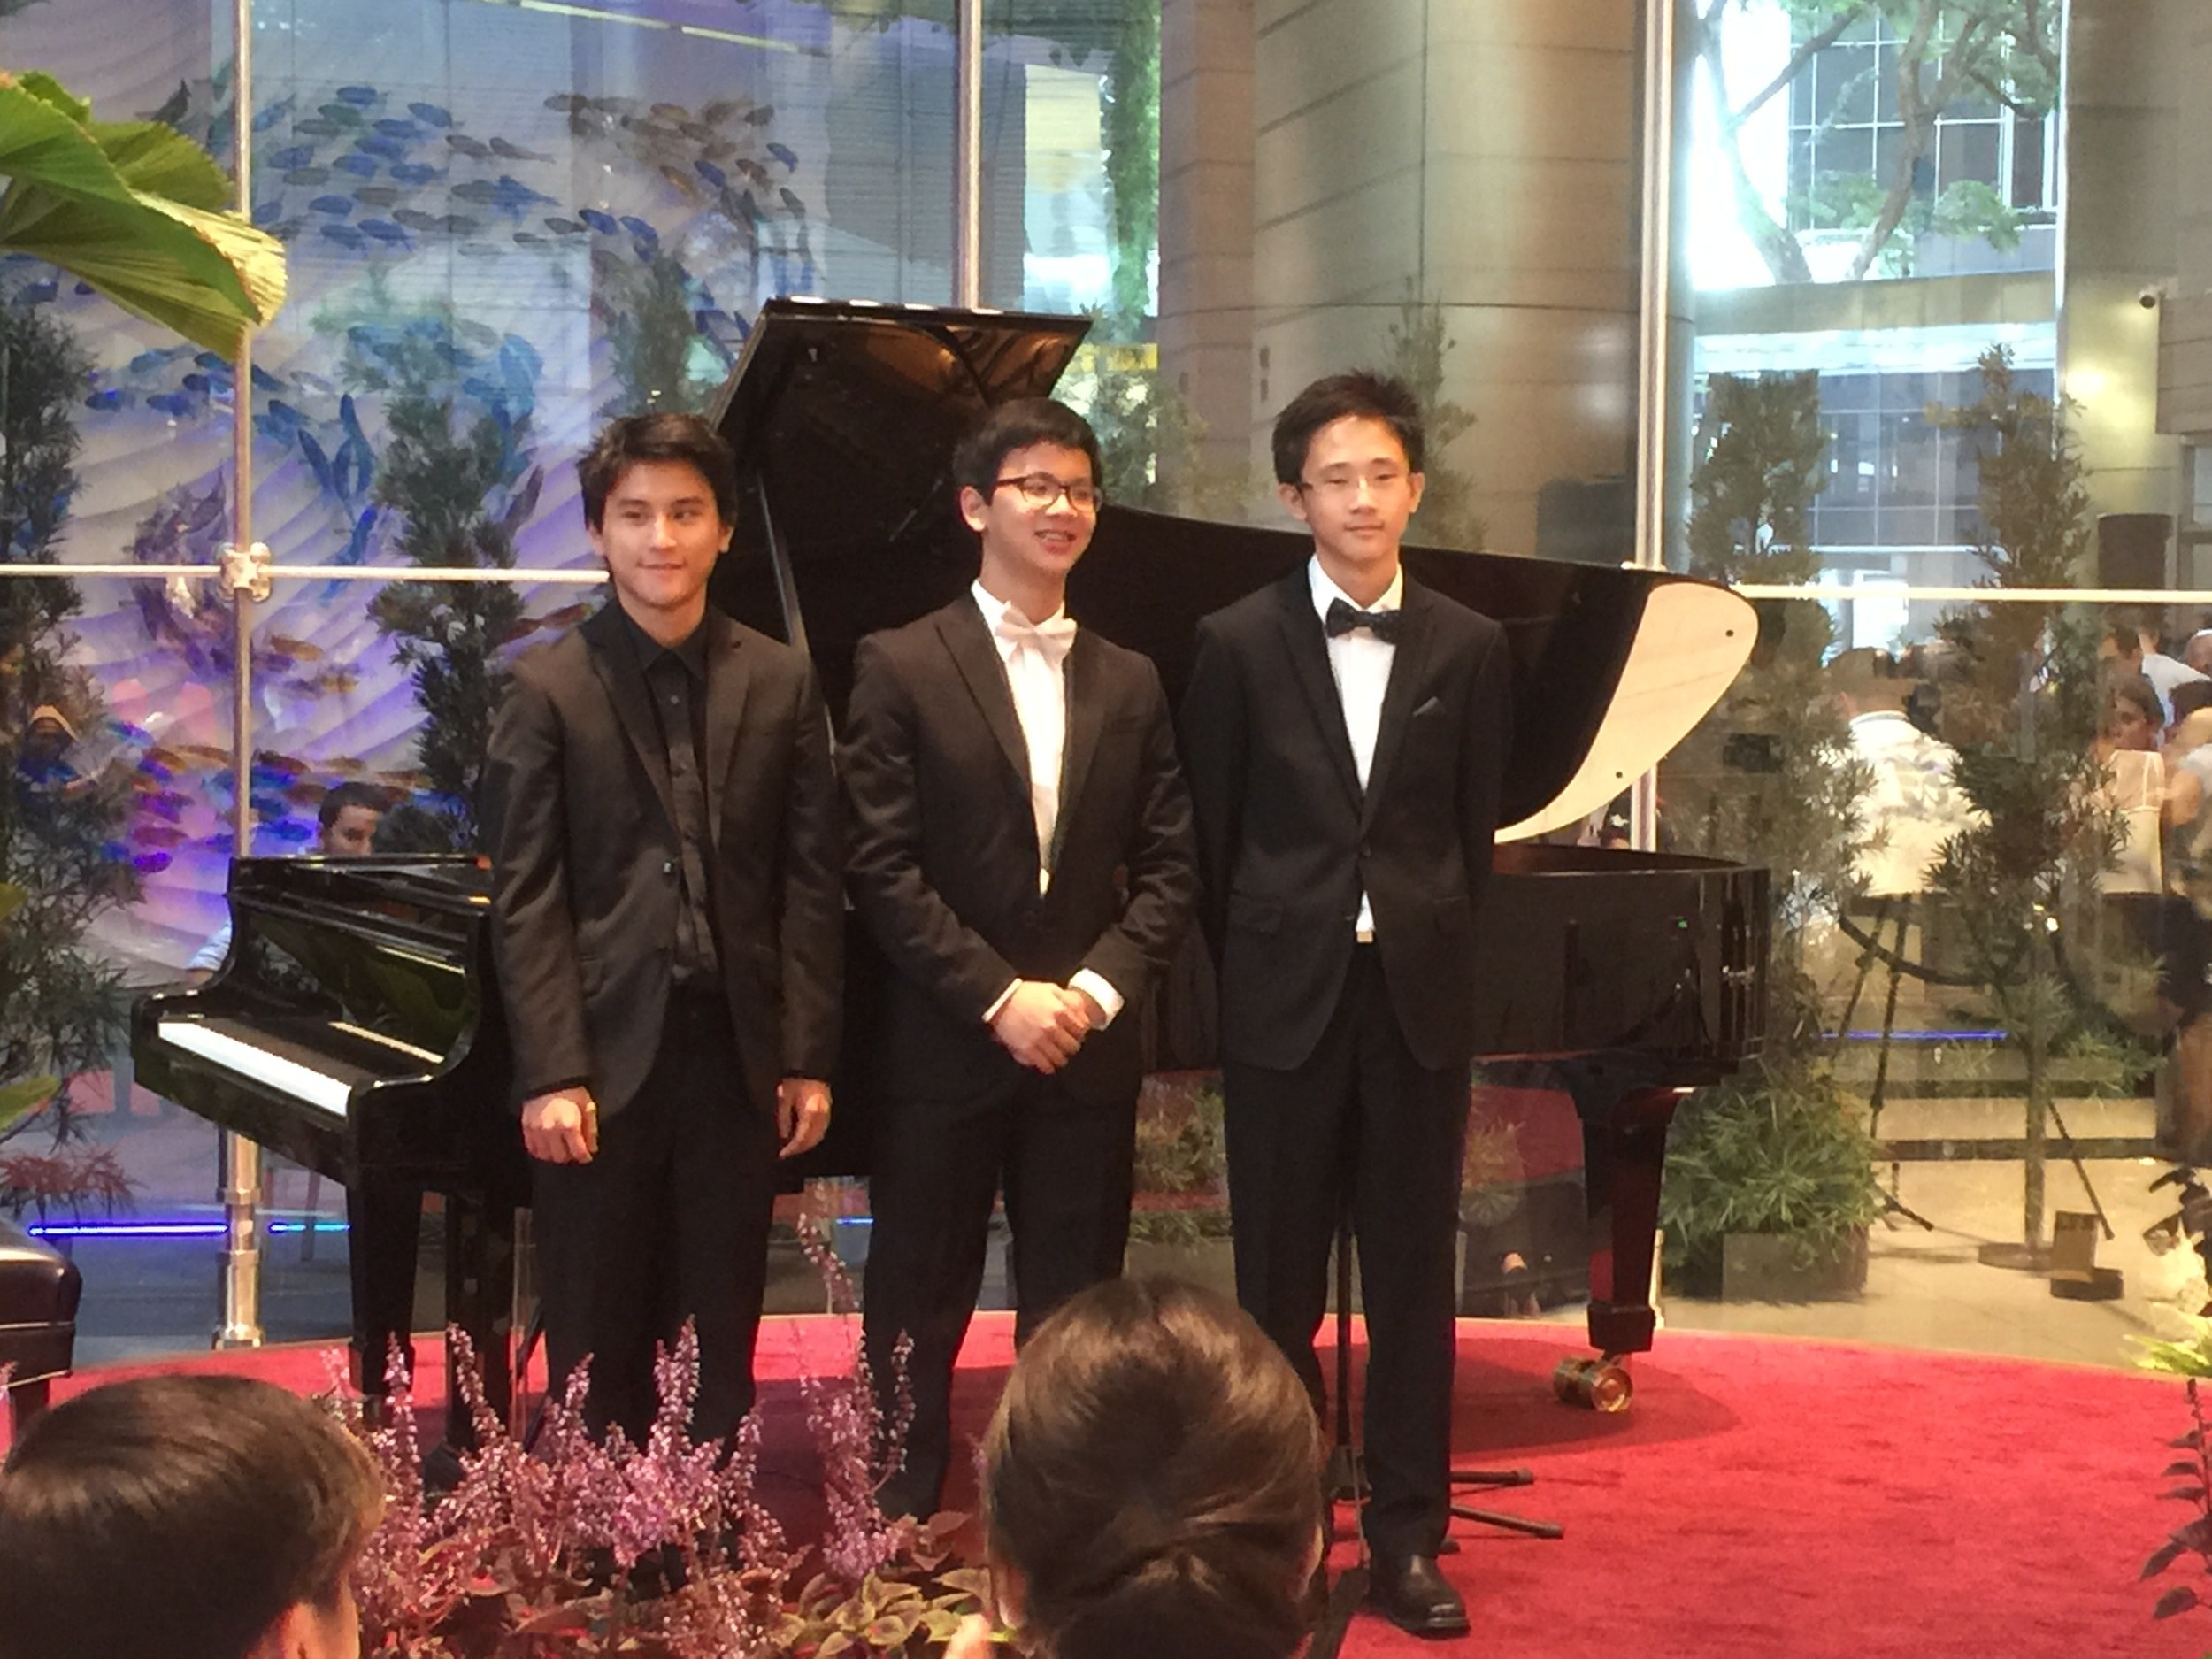 3 wonderful performances by (left to right) 20 y.o. School of the Arts student, Rui Xinwei (Ravel: Jeux d'eau), and my two private students, 13.y.o. Abel Ling and 14.y.o. Fong Kai De